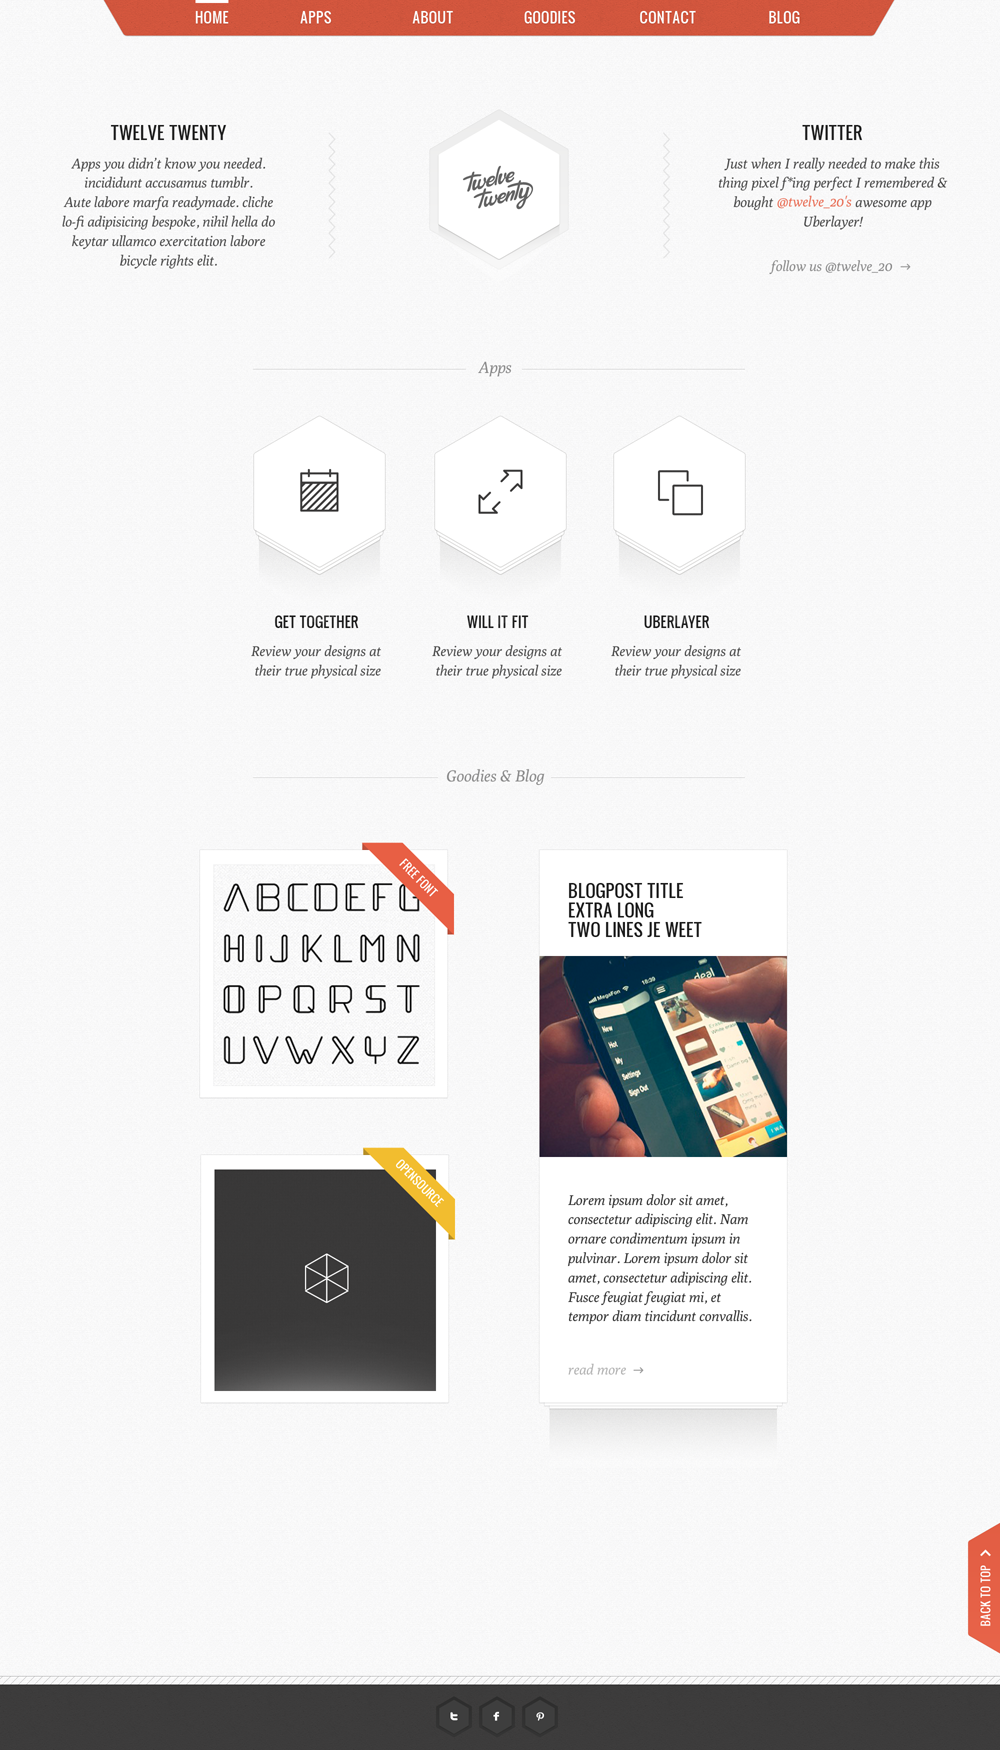 website-fullshot.png by Timo Kuilder